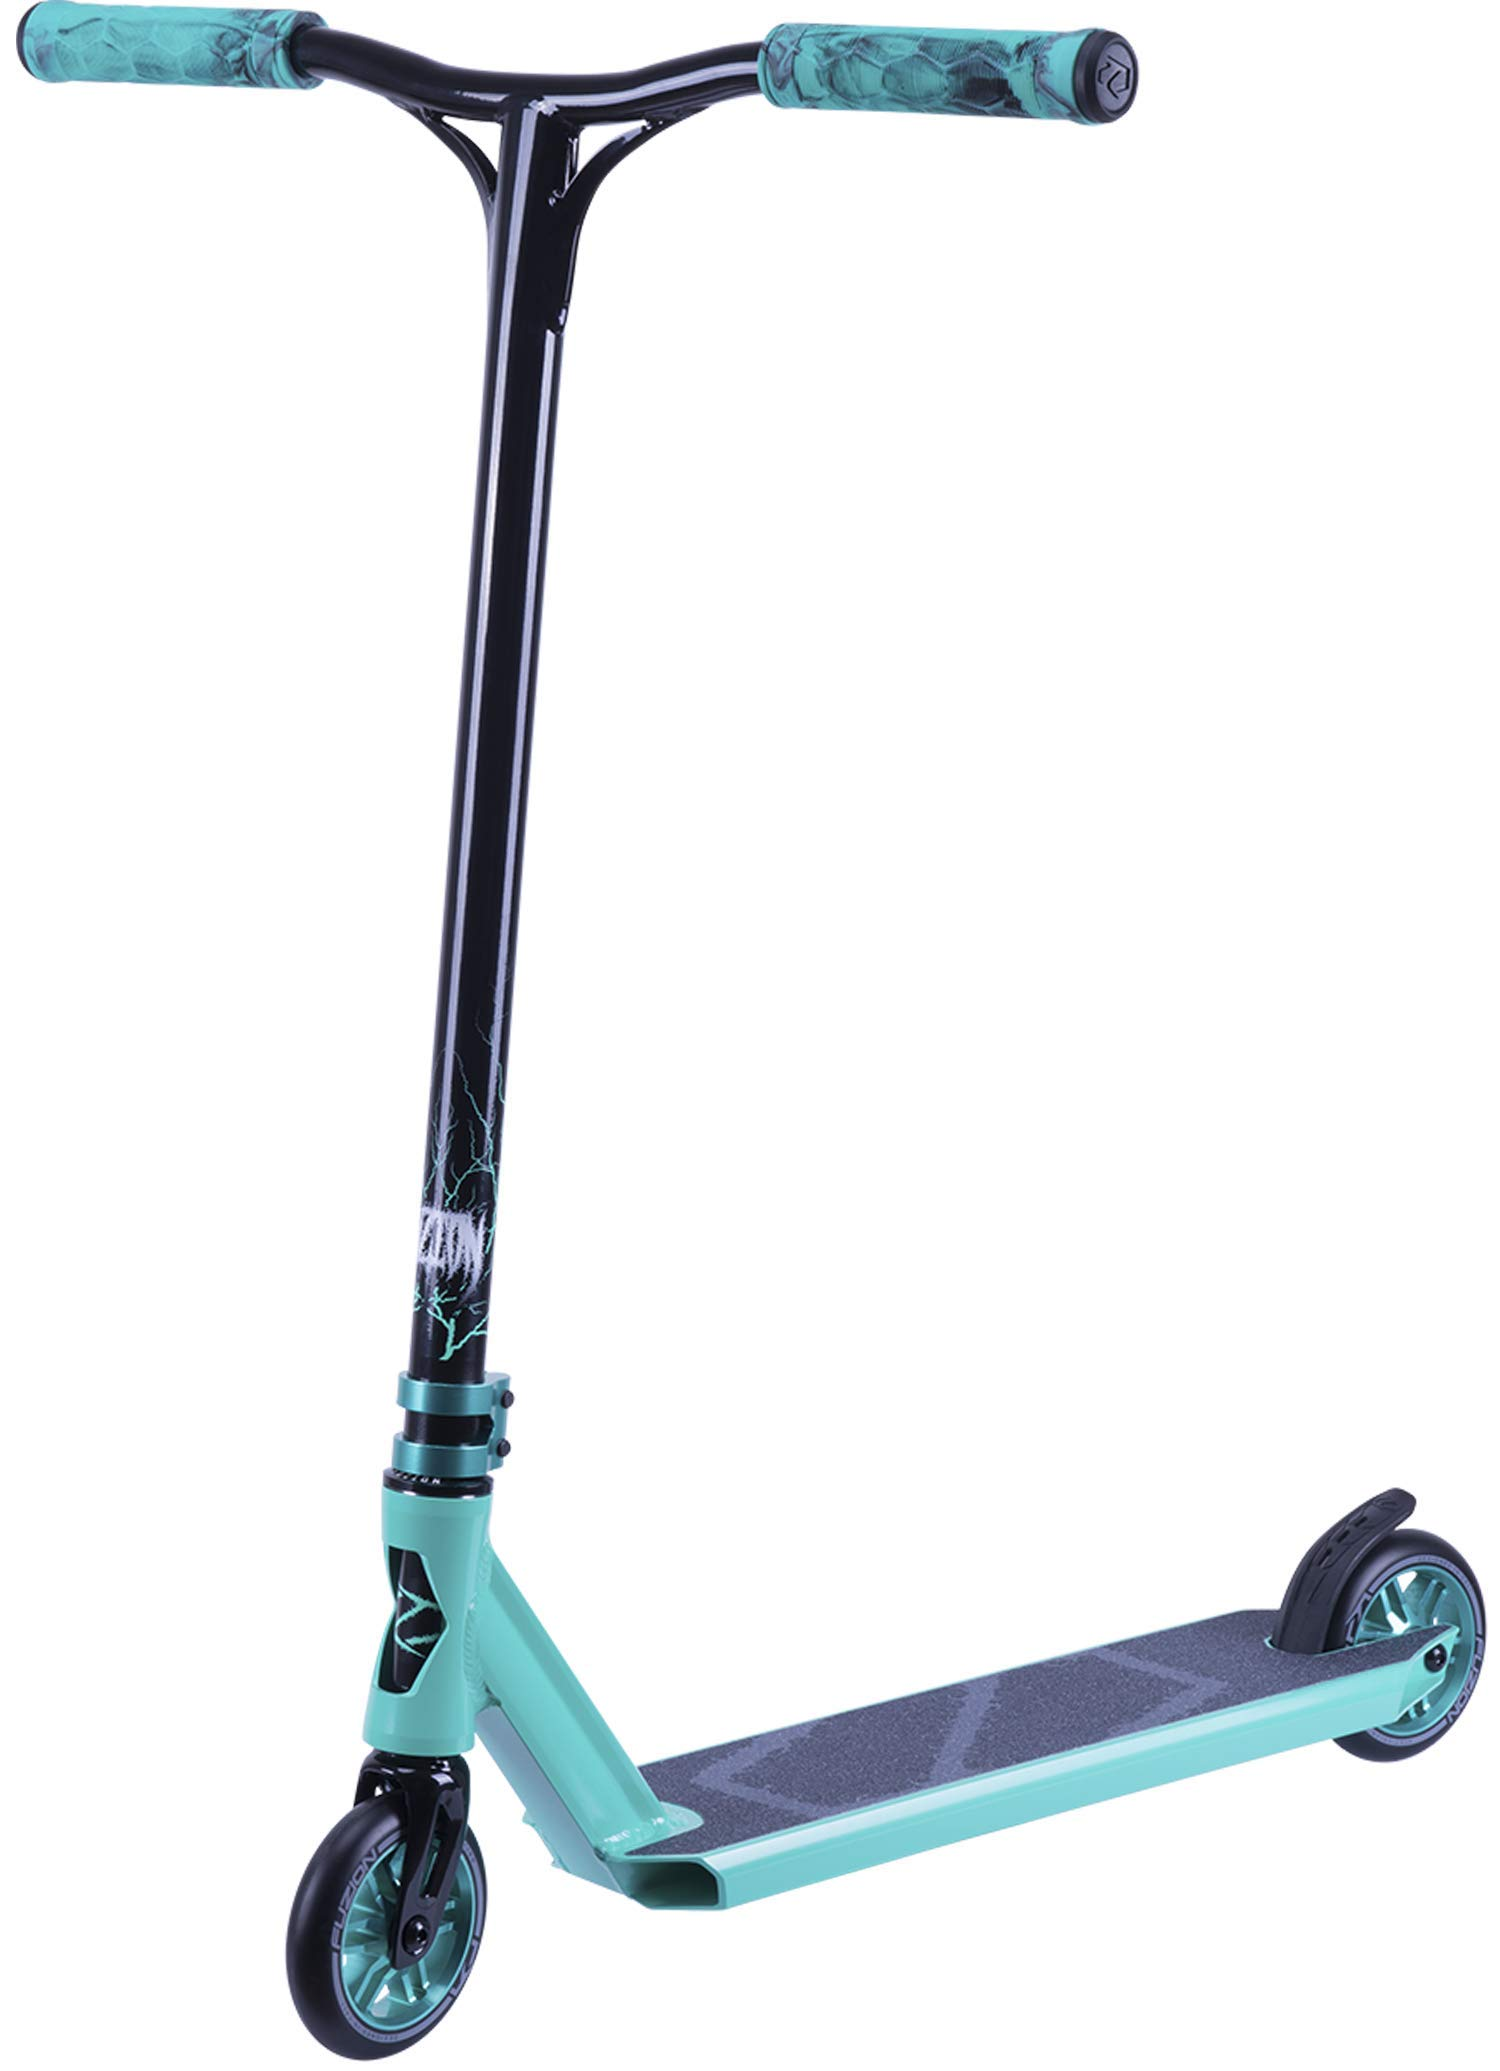 Fuzion Z300 Pro Scooter Complete Trick Scooter - Intermediate and Beginner Stunt Scooters for Kids 8 Years and Up, Teens and Adults - Durable, Smooth, Freestyle Kick Scooter for Boys and Girls (Fury) by Unknown